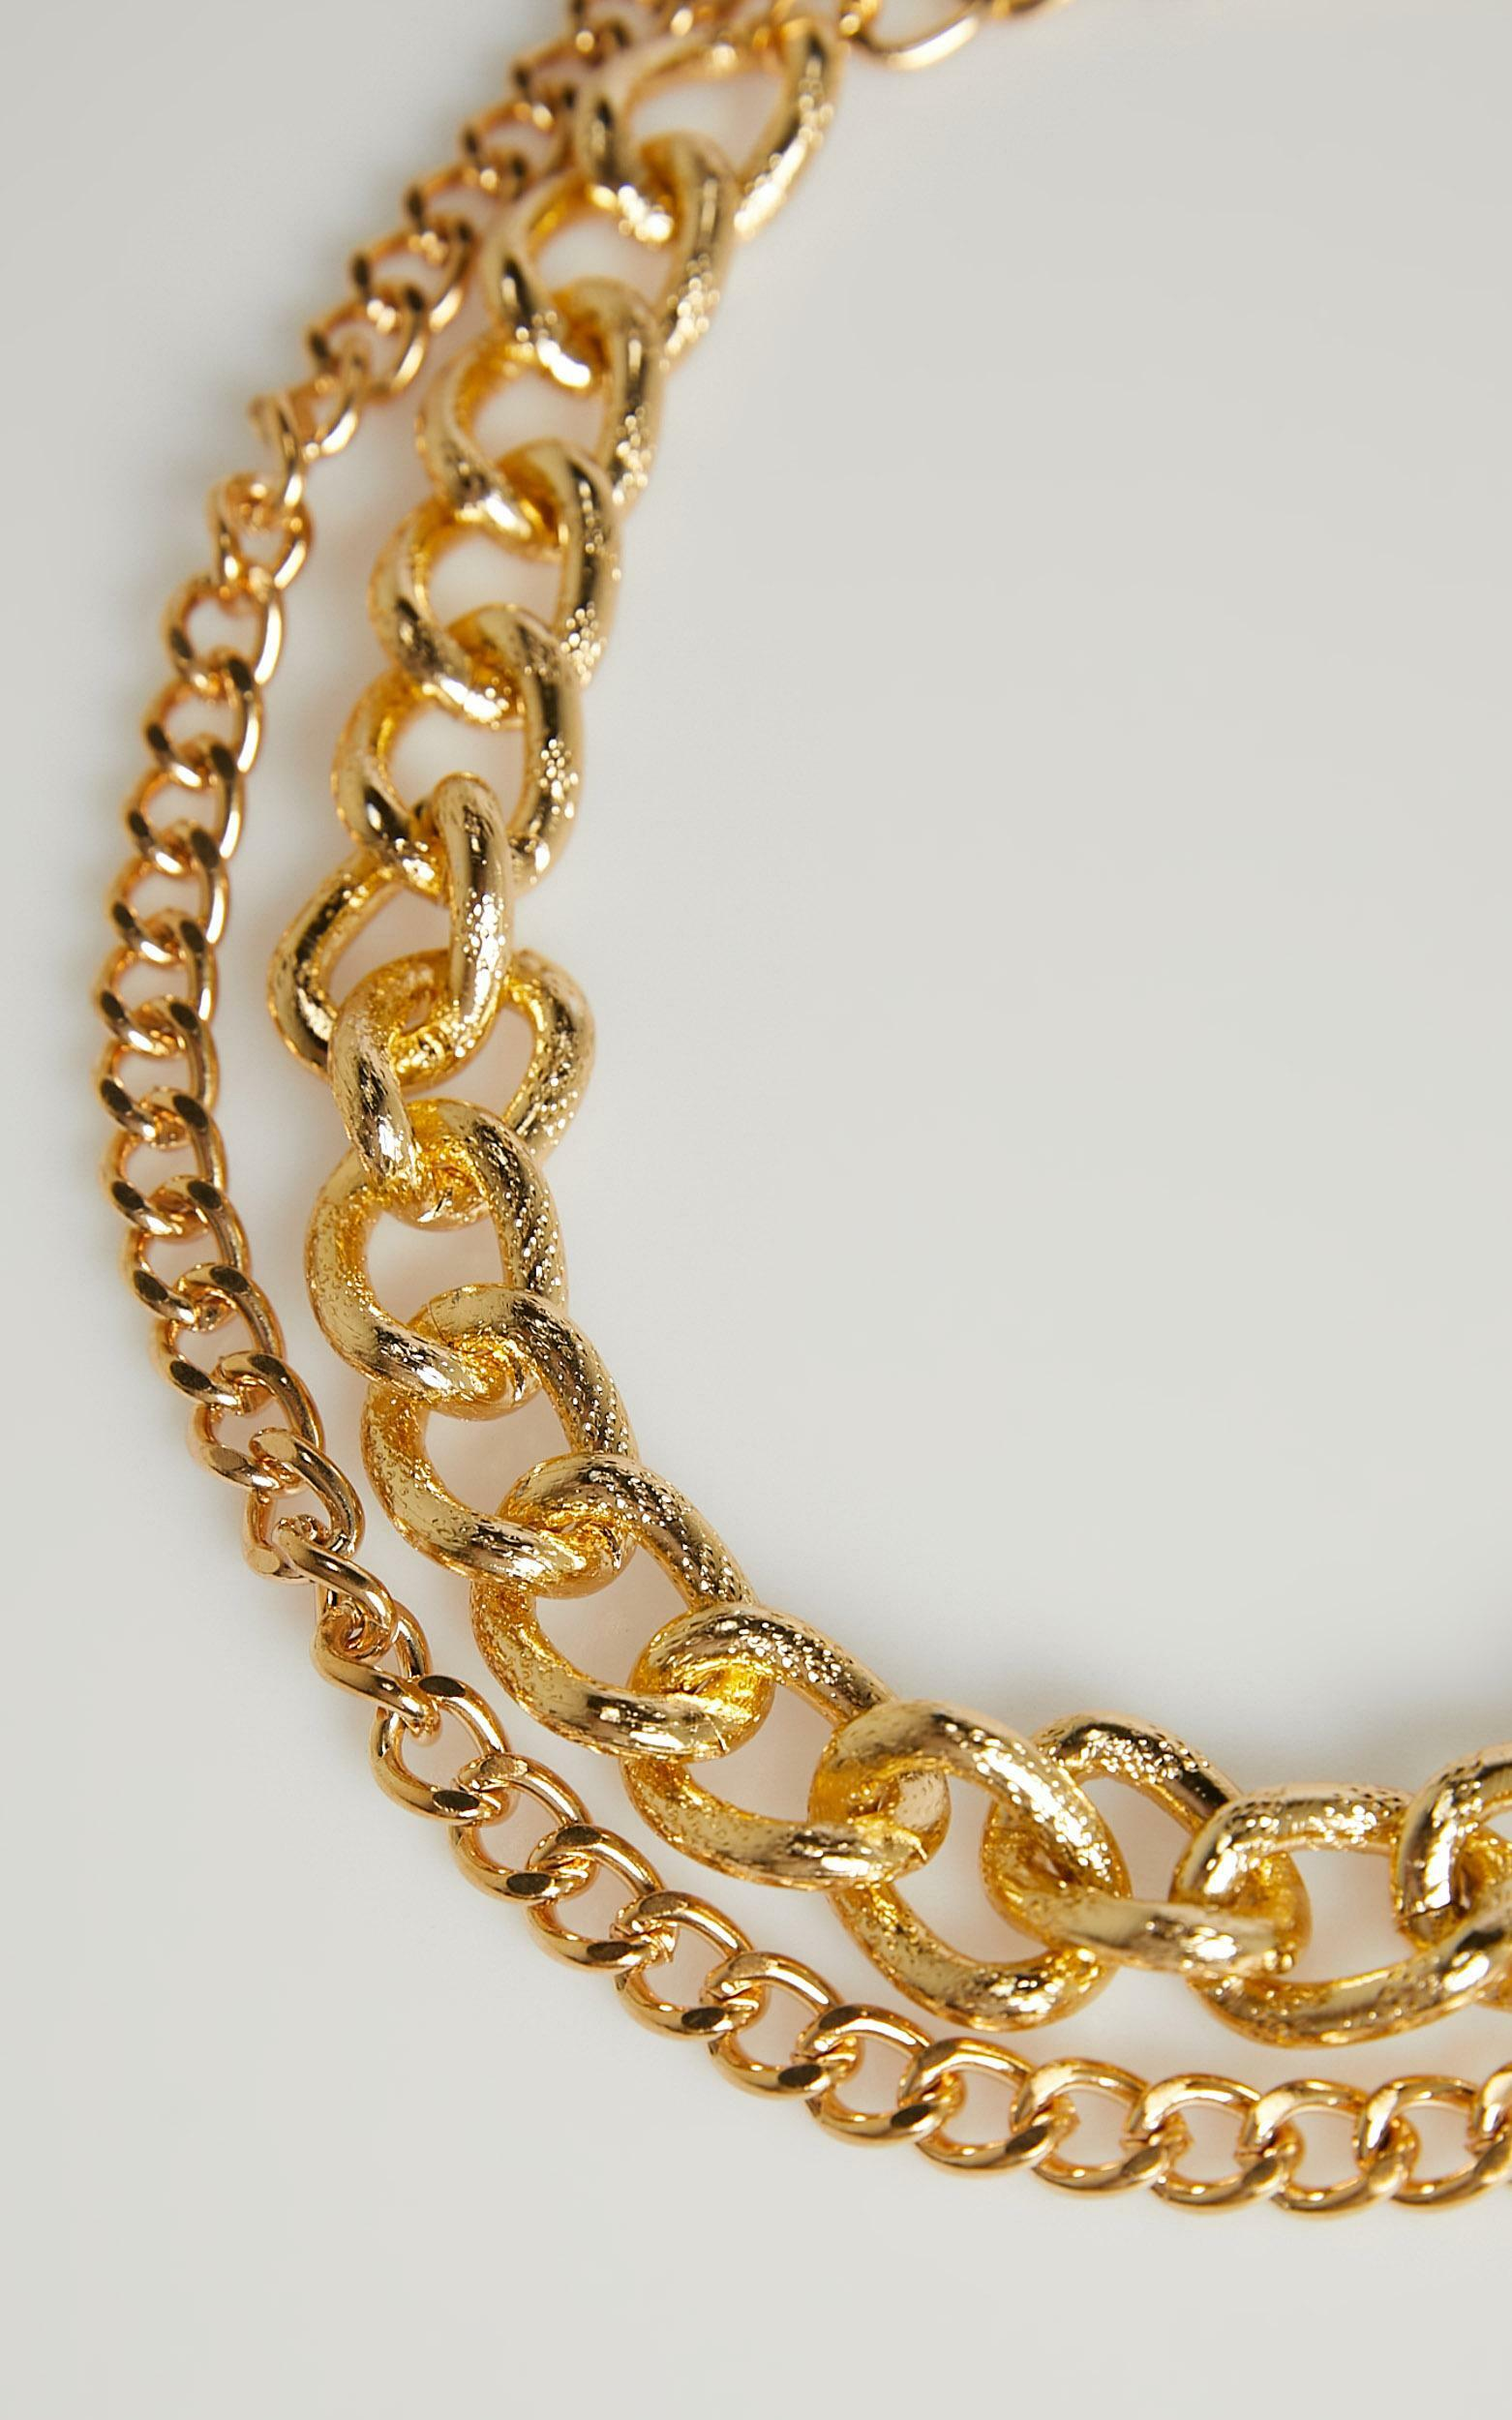 Acadia Necklace in Gold, , hi-res image number null